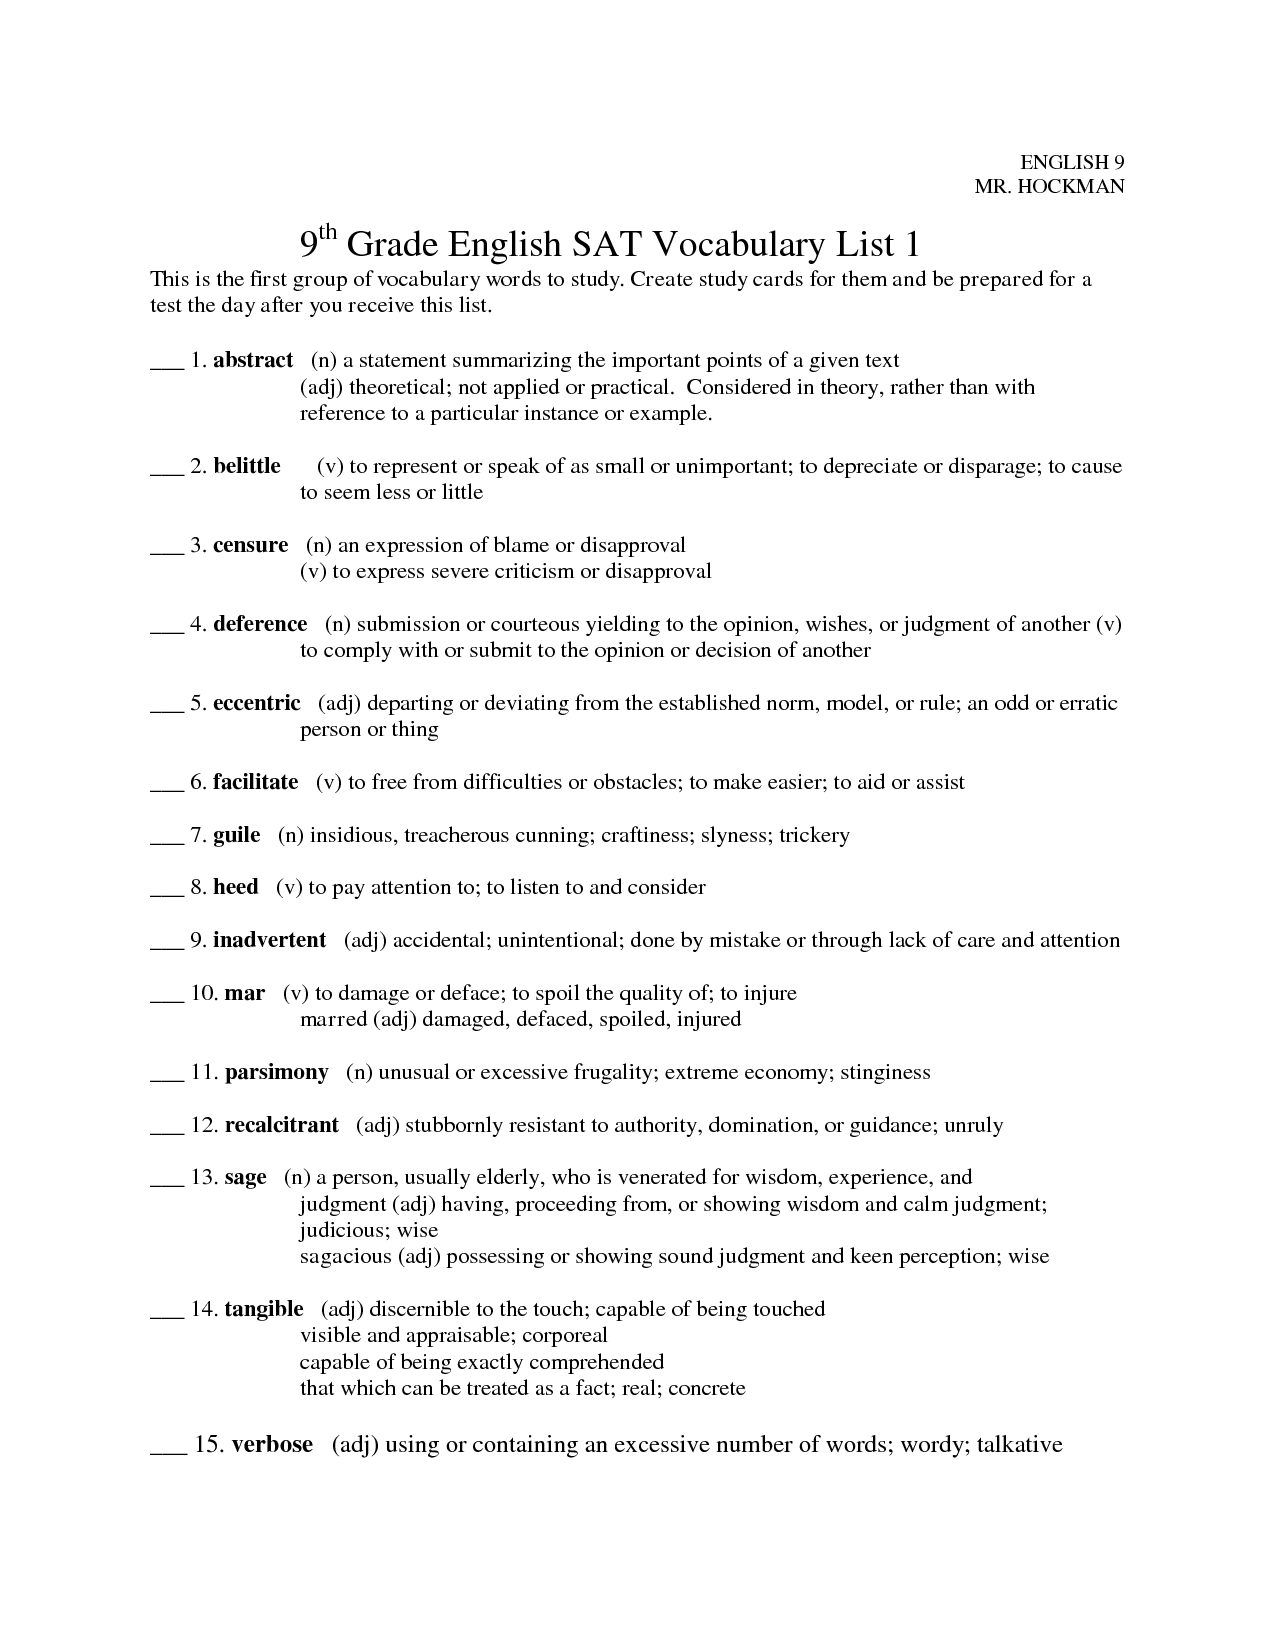 9th Grade Vocabulary Worksheets With Images